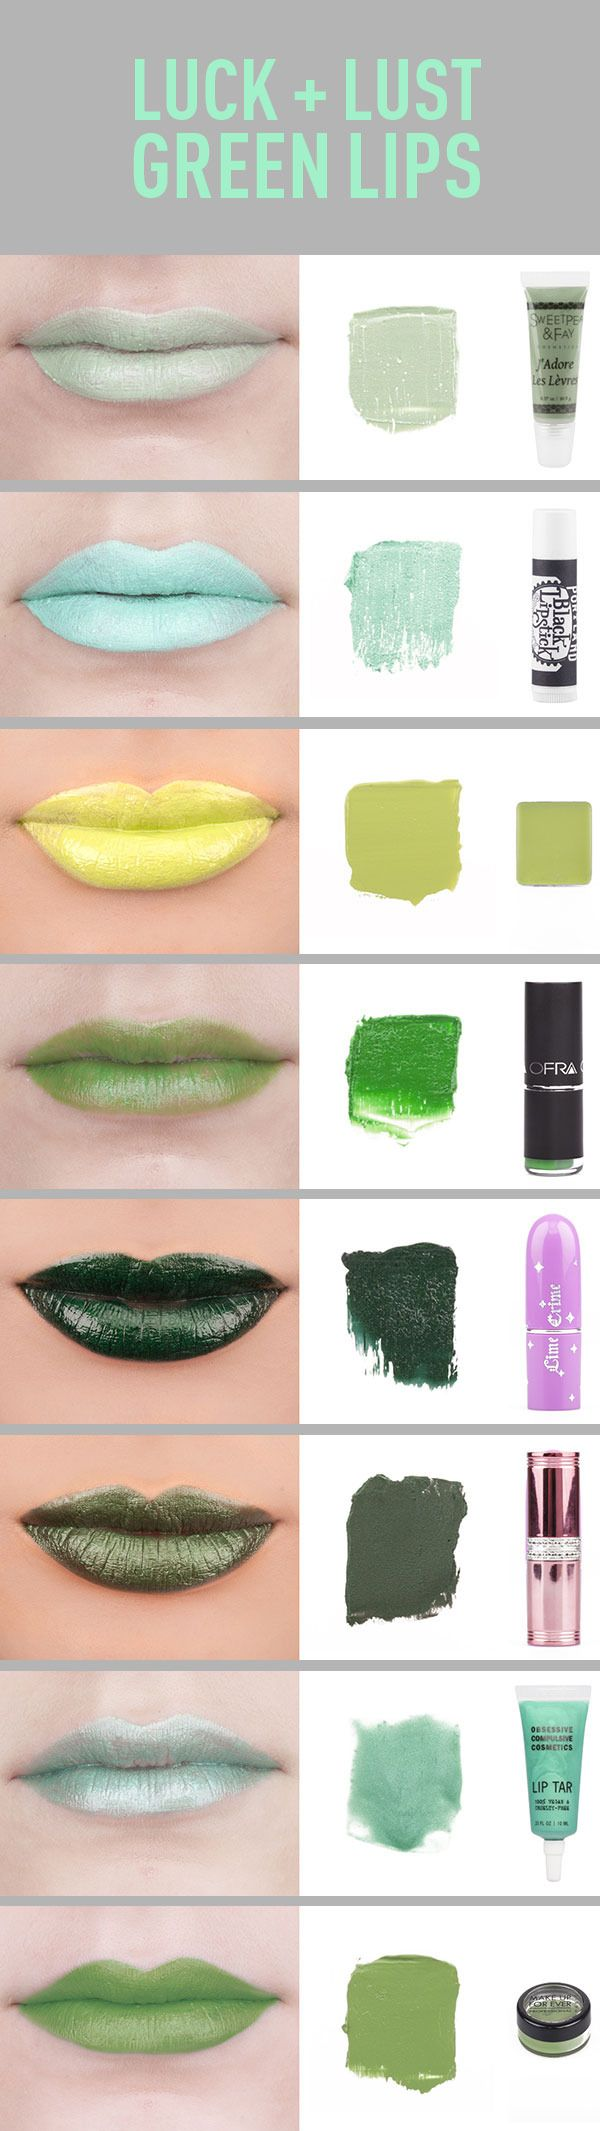 Green Lipstick Swatches and Reviews. I love these colors! But for the young and bold, being my age, my experienced beauty is bold enough :) I think sublet is best for me. Well subtle with a little flair anyway.